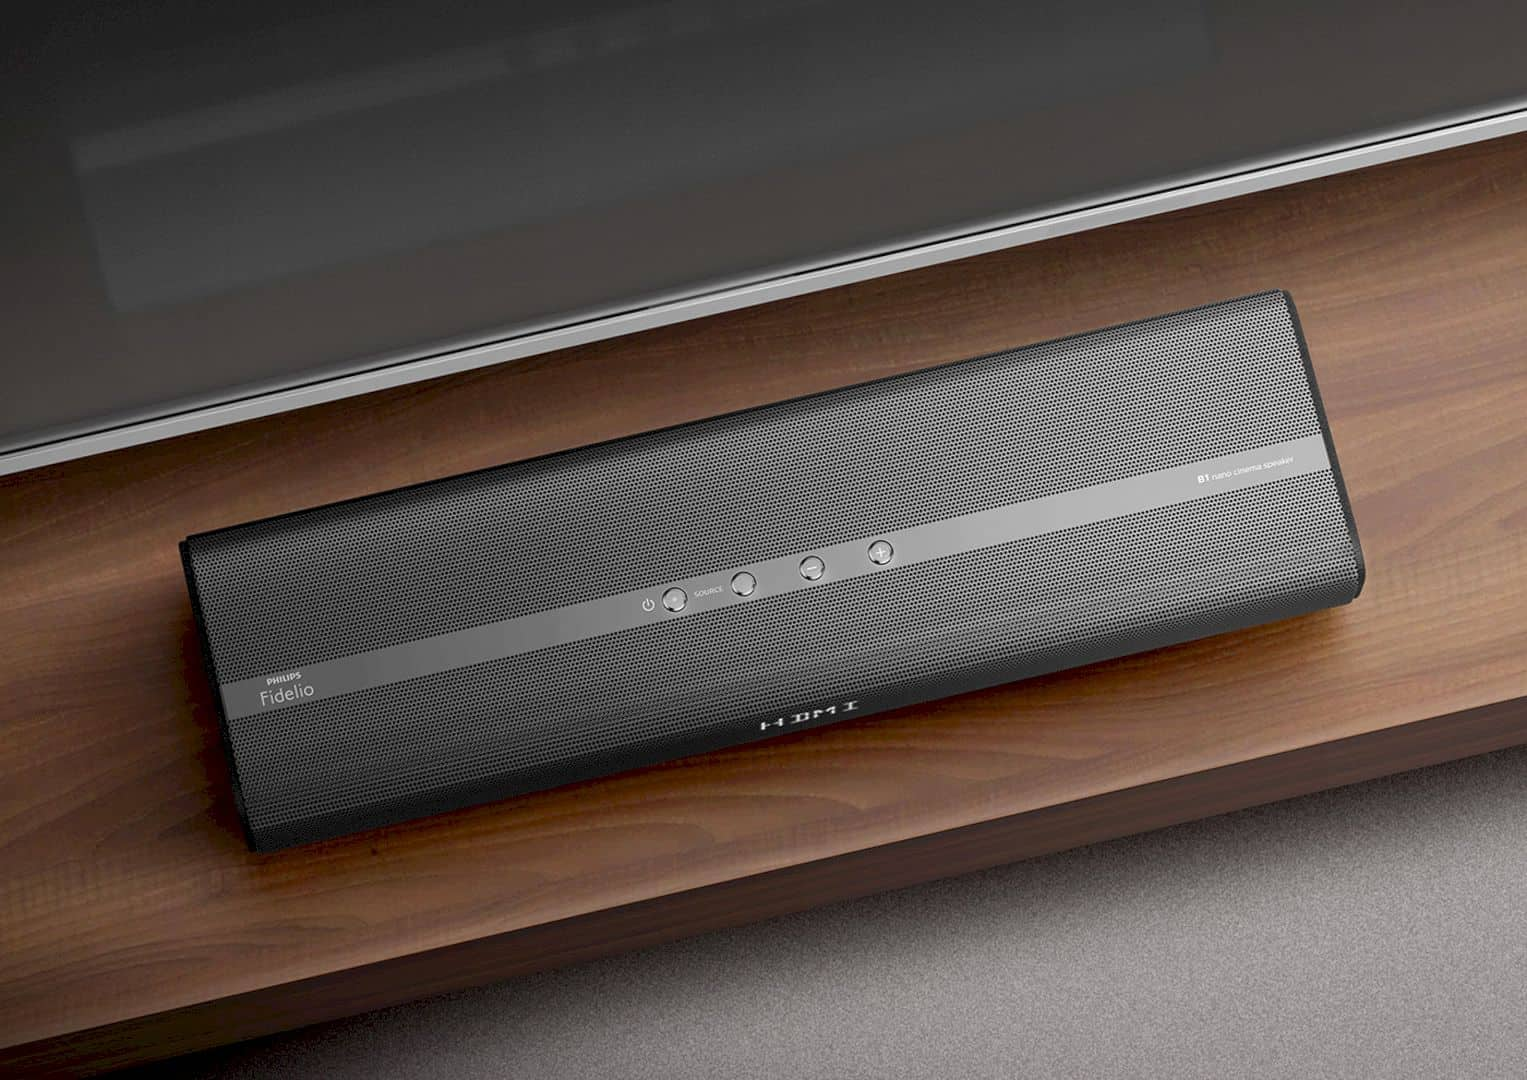 The Philips Fidelio Soundbar 4